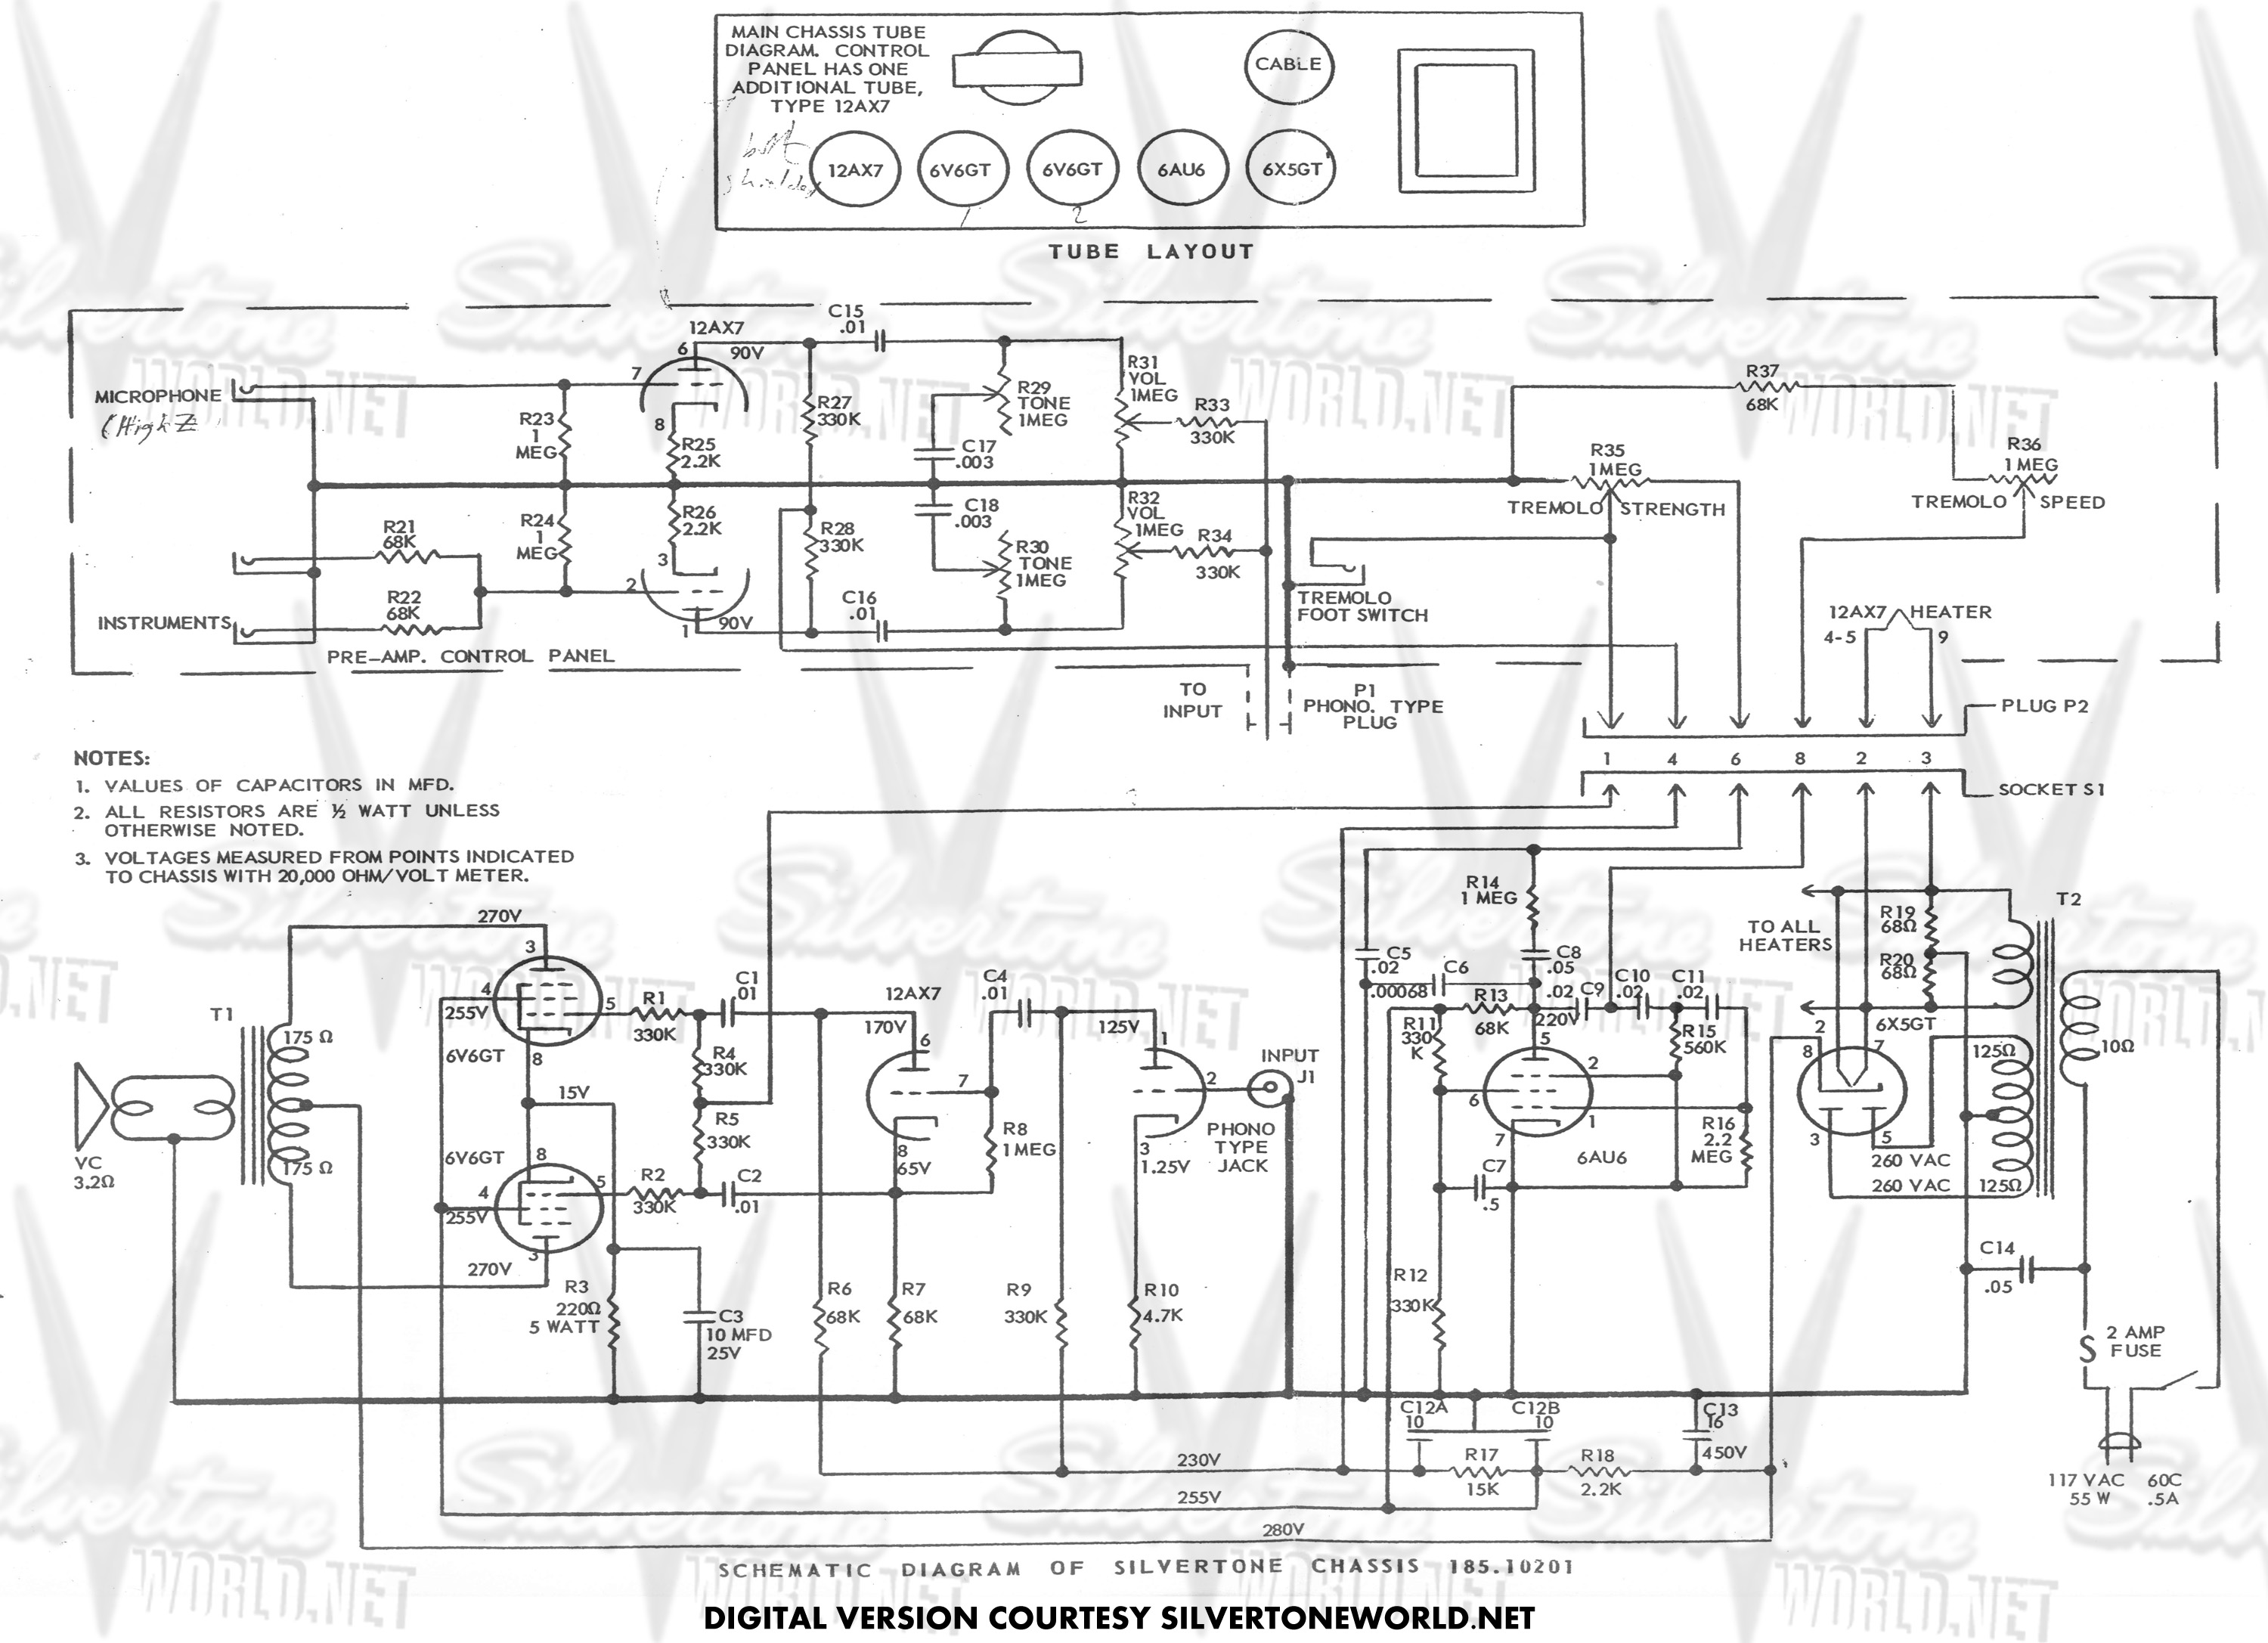 Silver Tone Wiring Diagram Schematic Simple Post Symbols And Their Meanings Silvertone Amp Data Schema